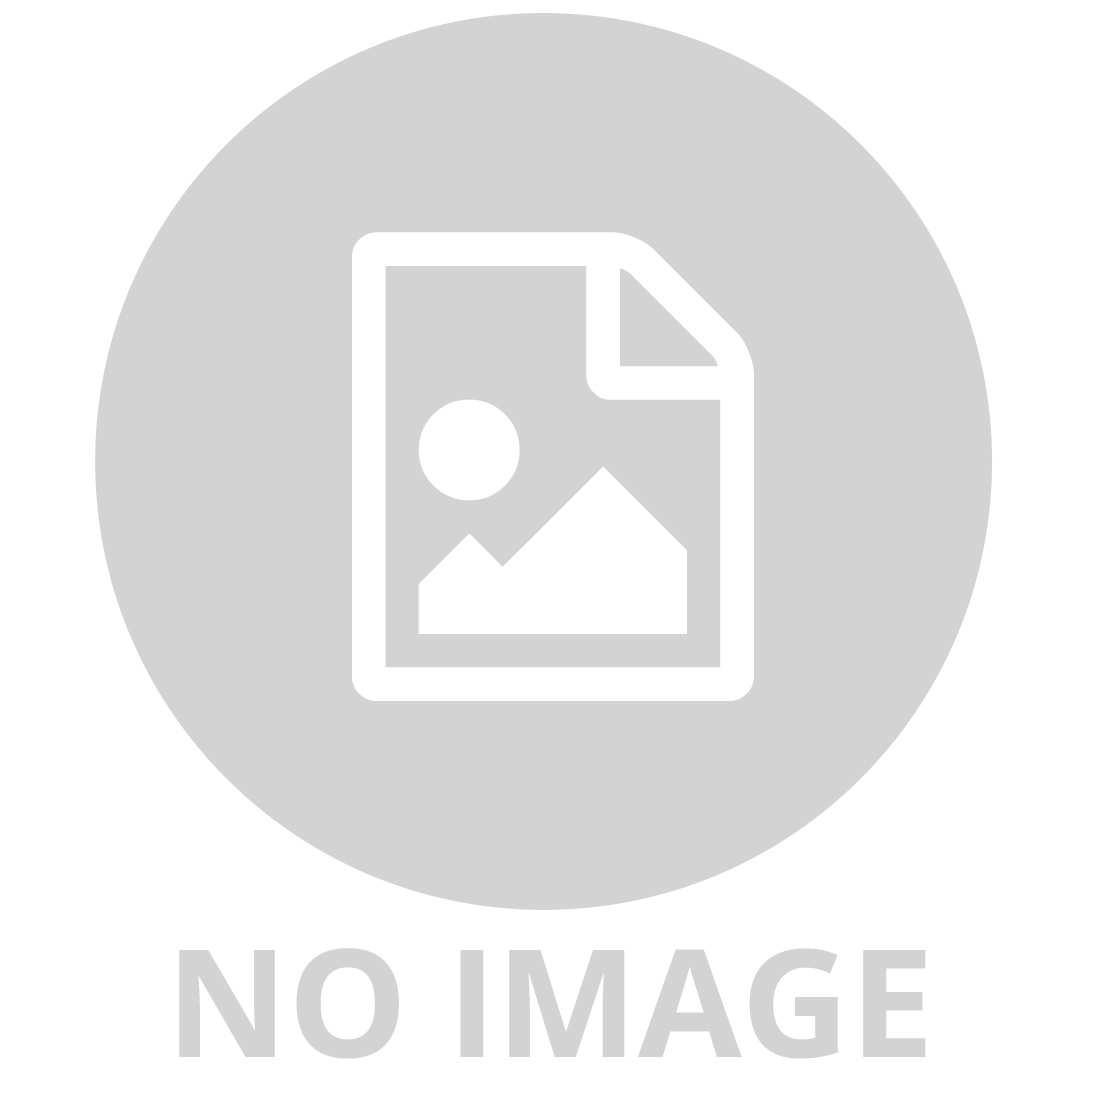 TRAXXAS SLASH SHORT COURSE OFF ROAD RACE TRUCK